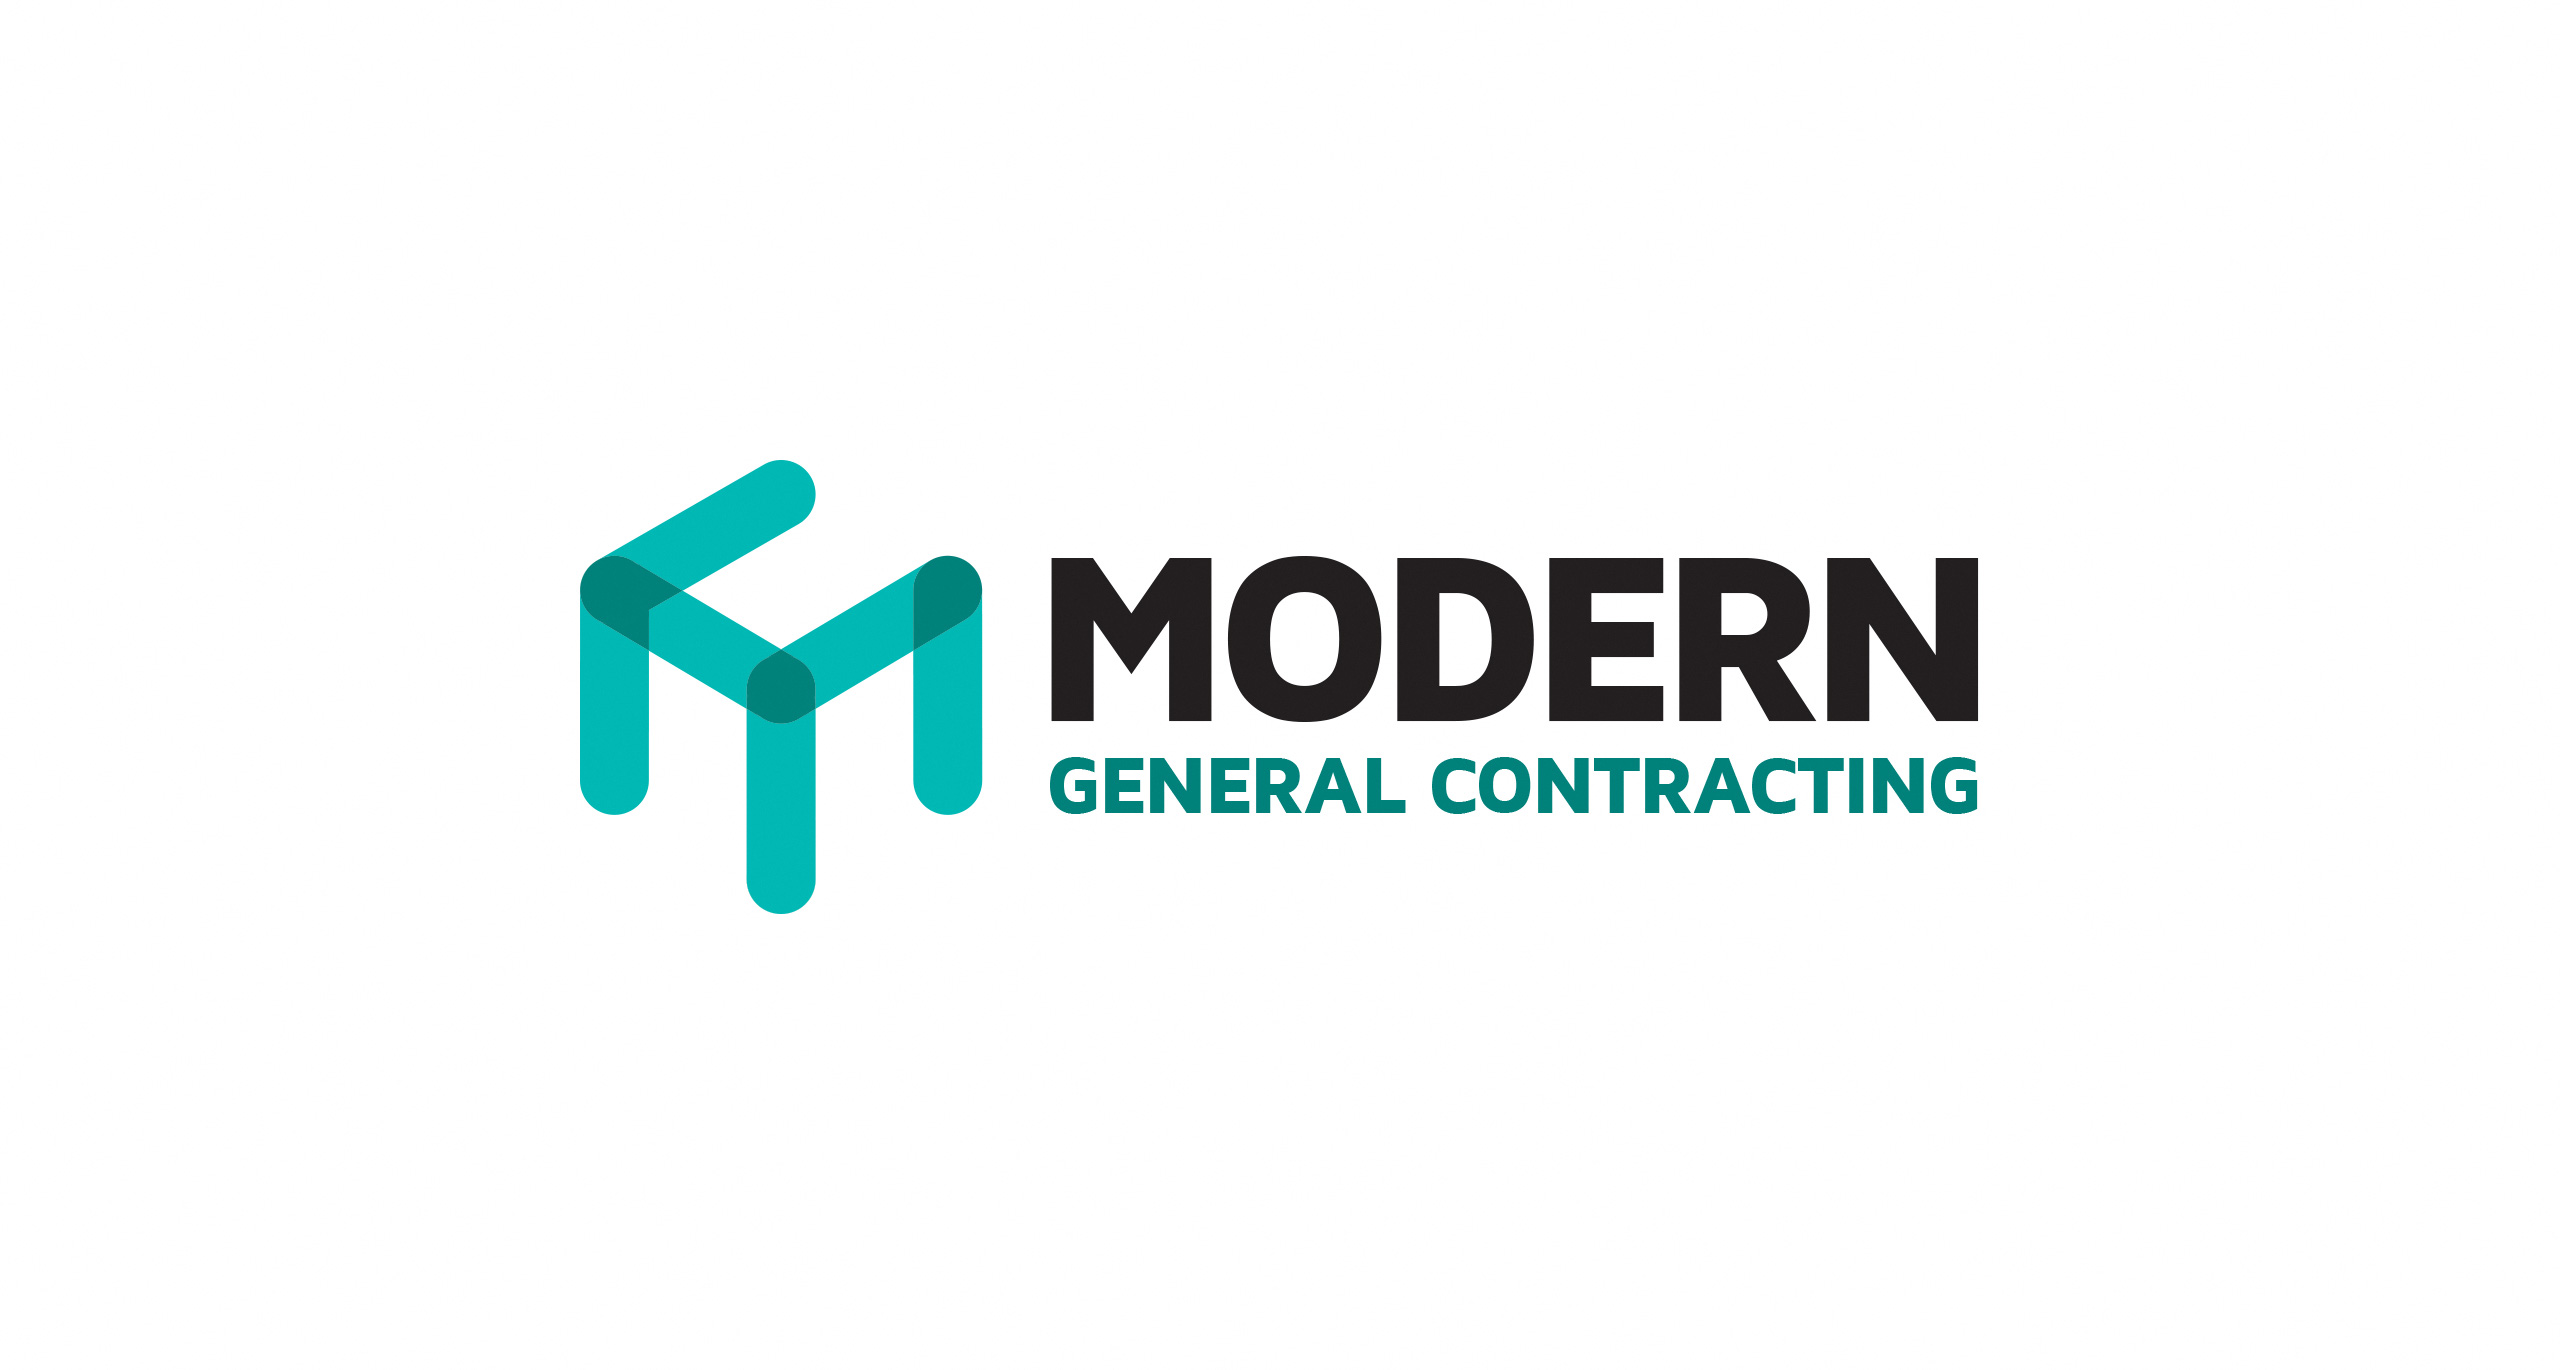 Logo Re-Design Concepts for Modern Contracting